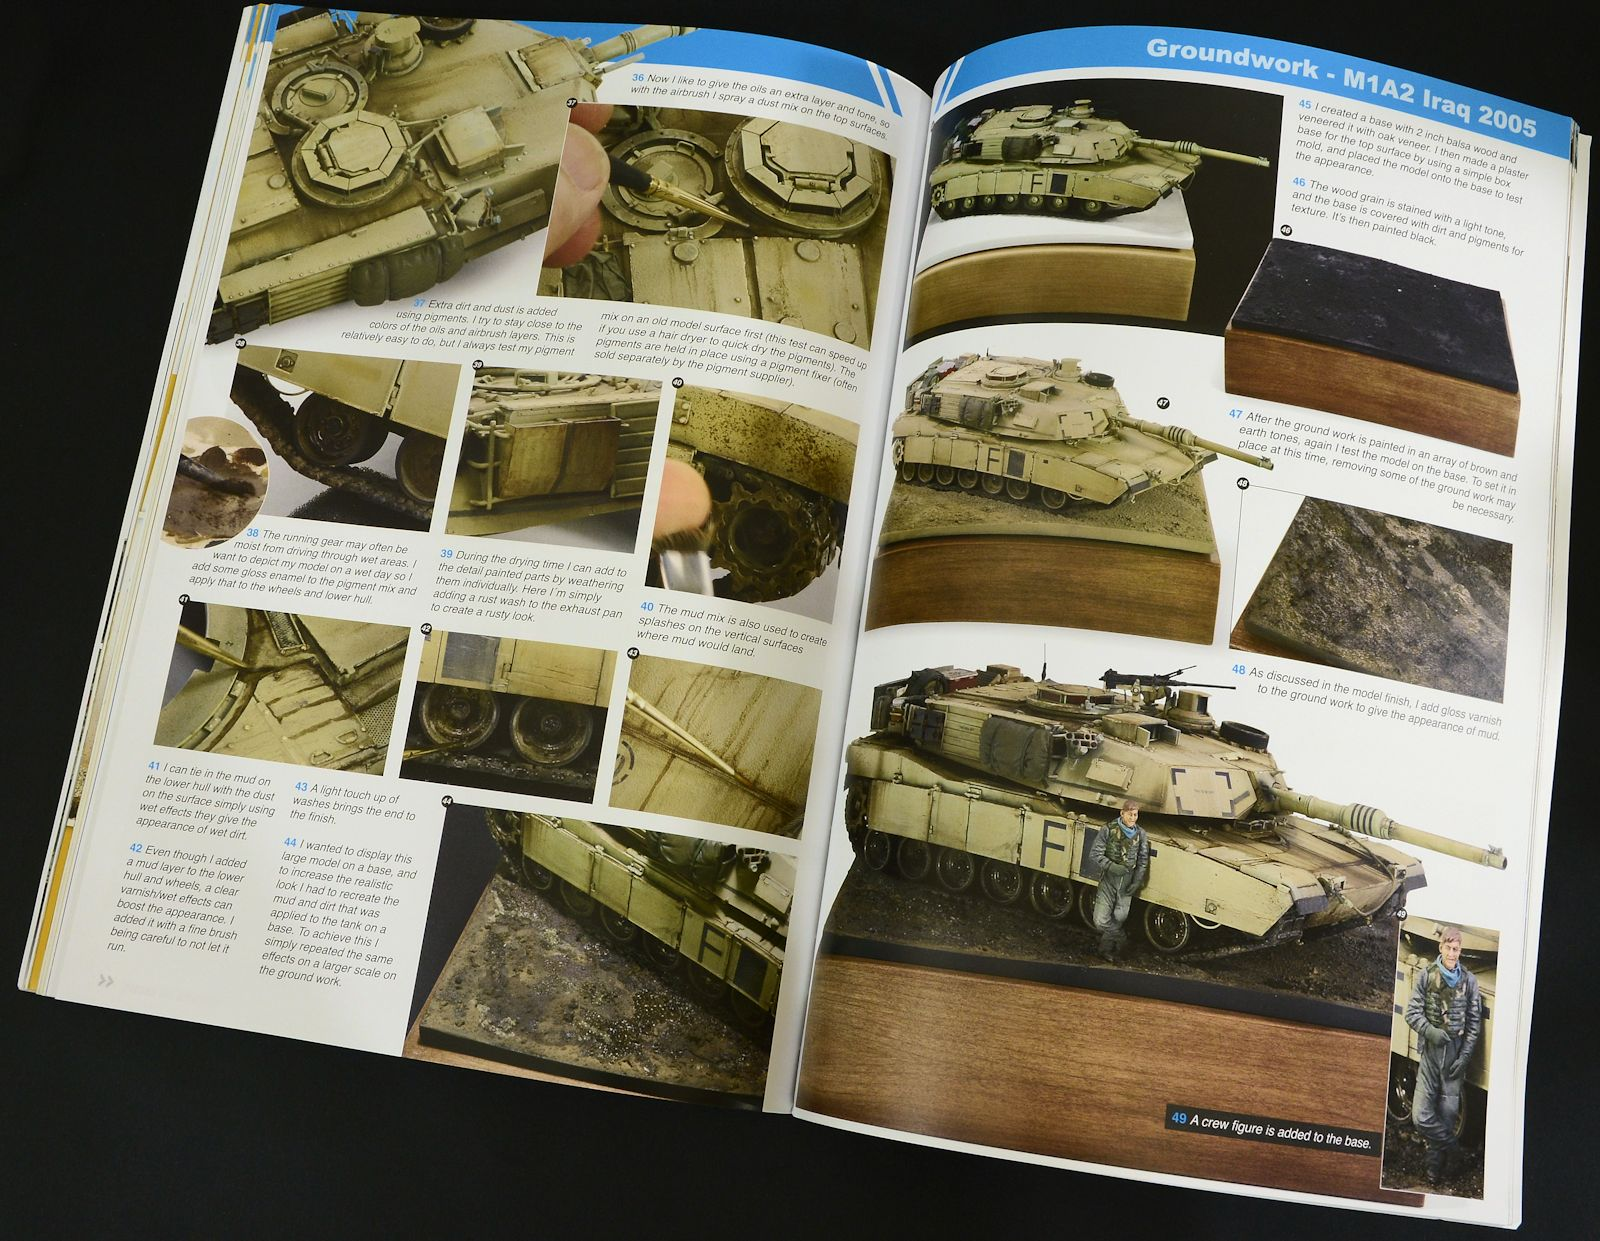 The Modelling News: Read'n Review: Pla Editions' Modelling the